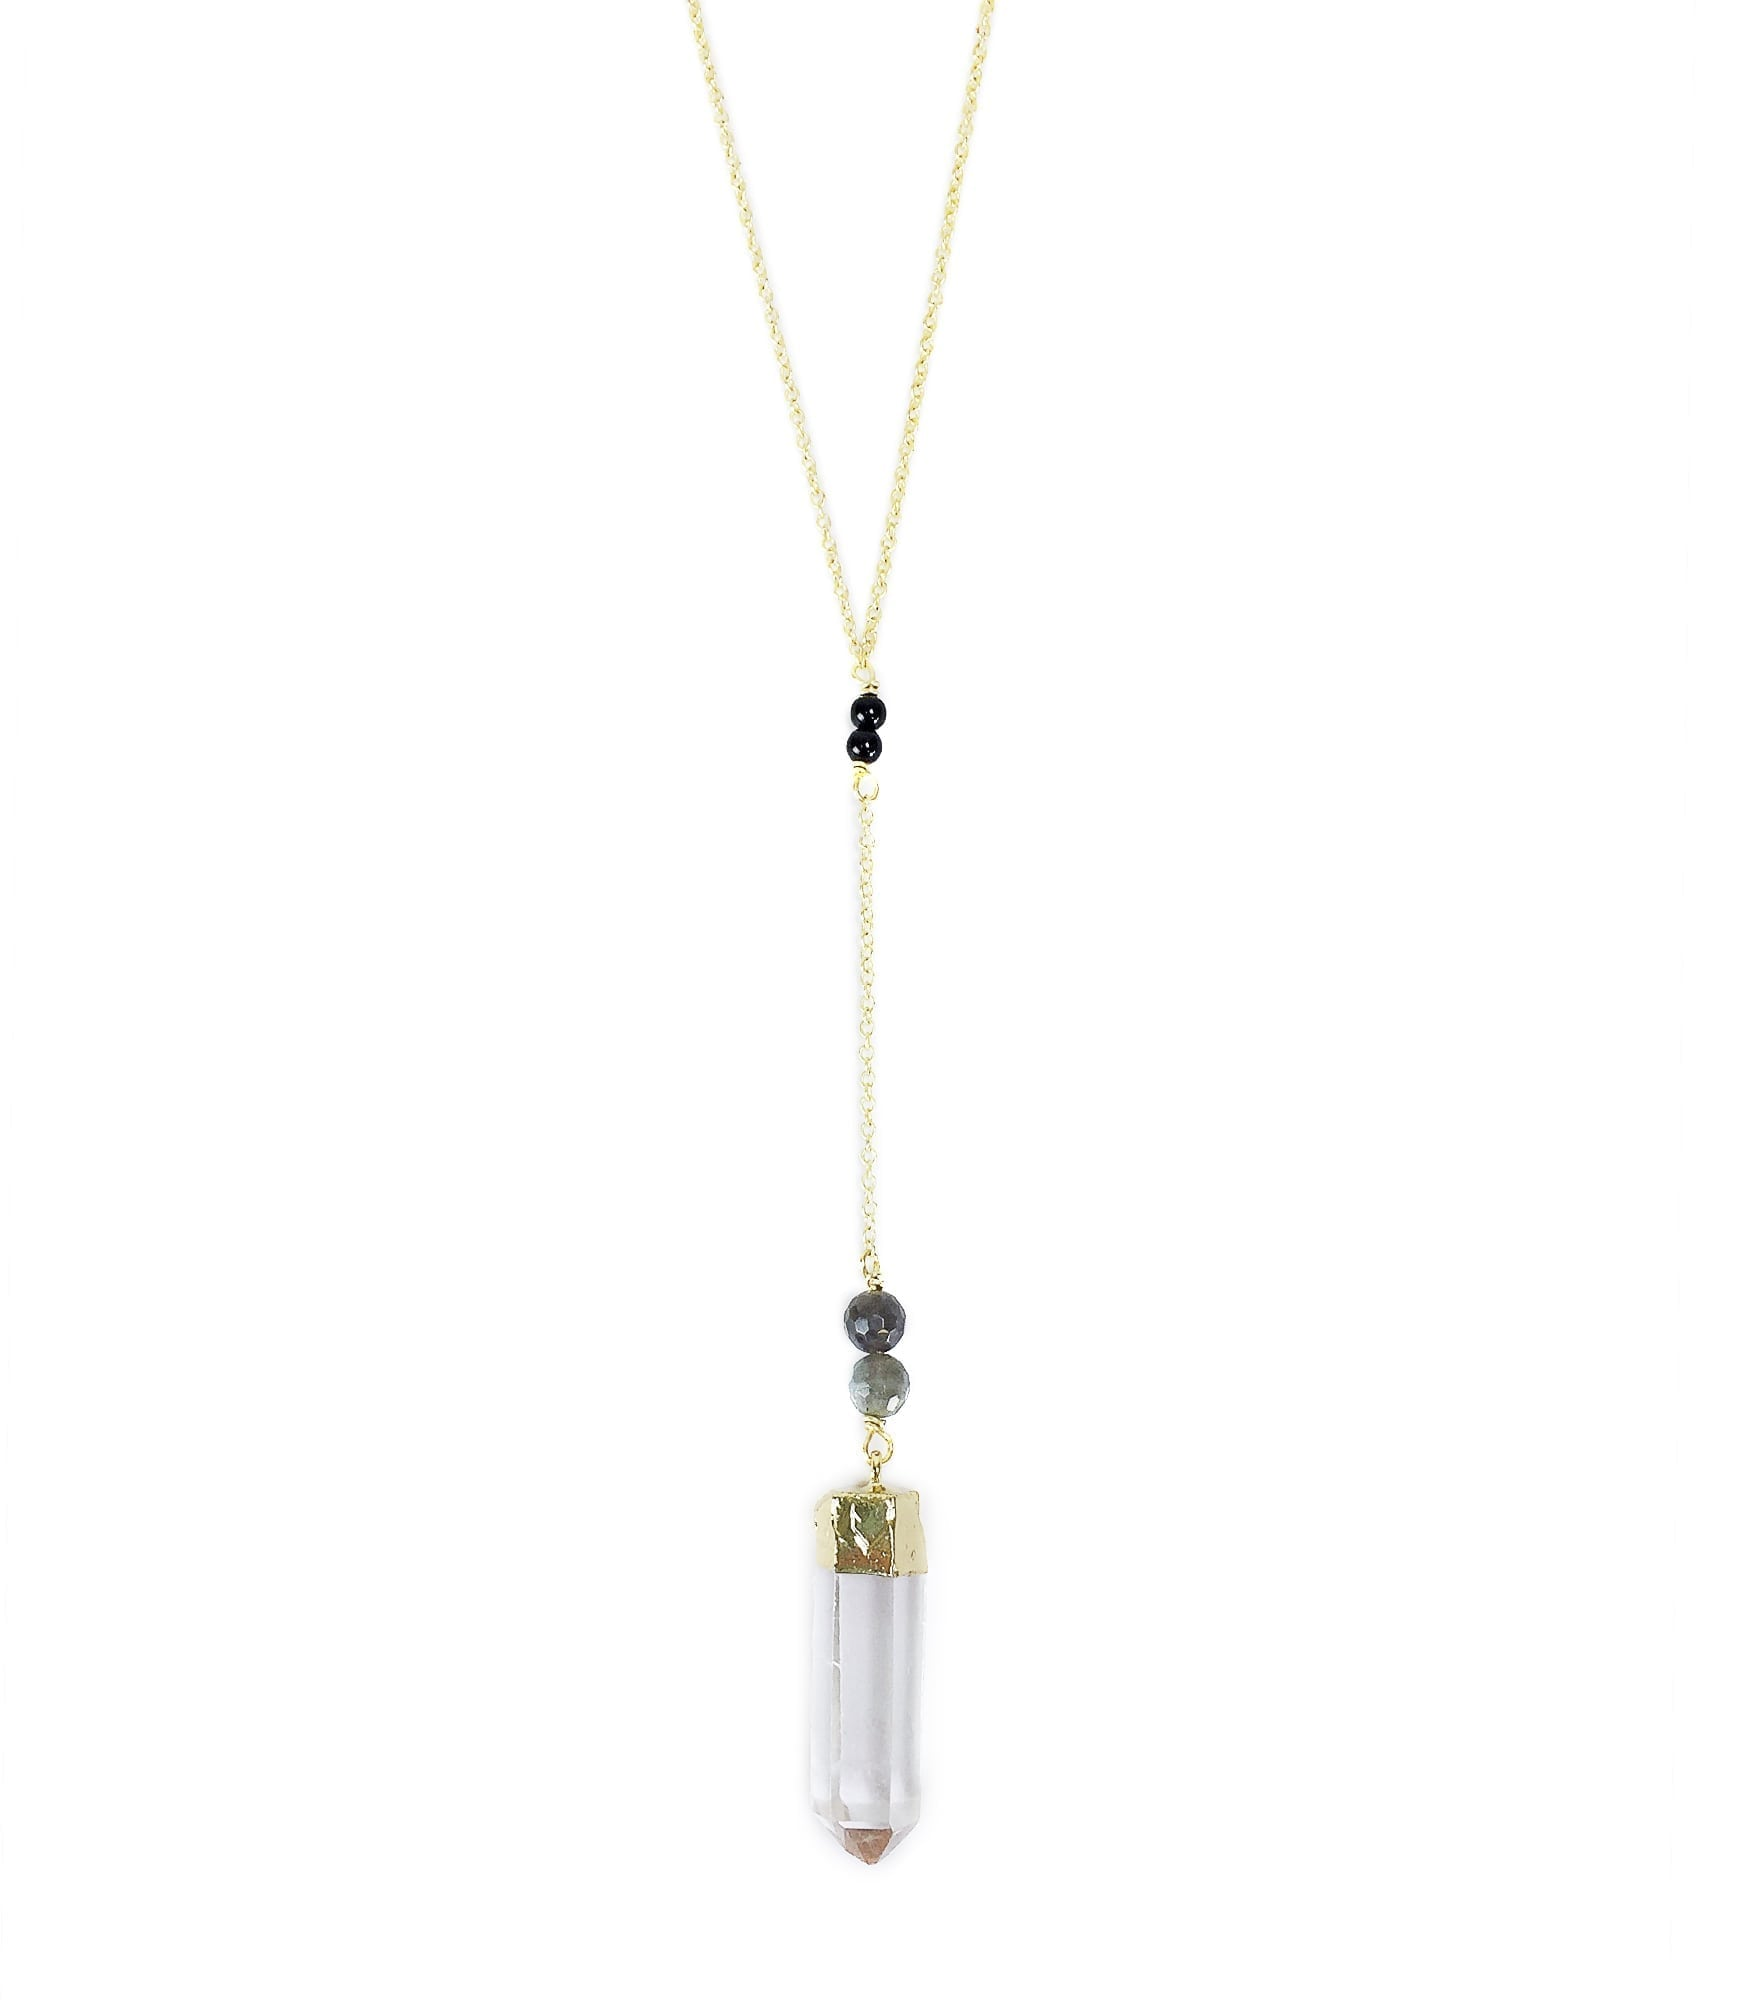 Quartz Pregnancy Necklace